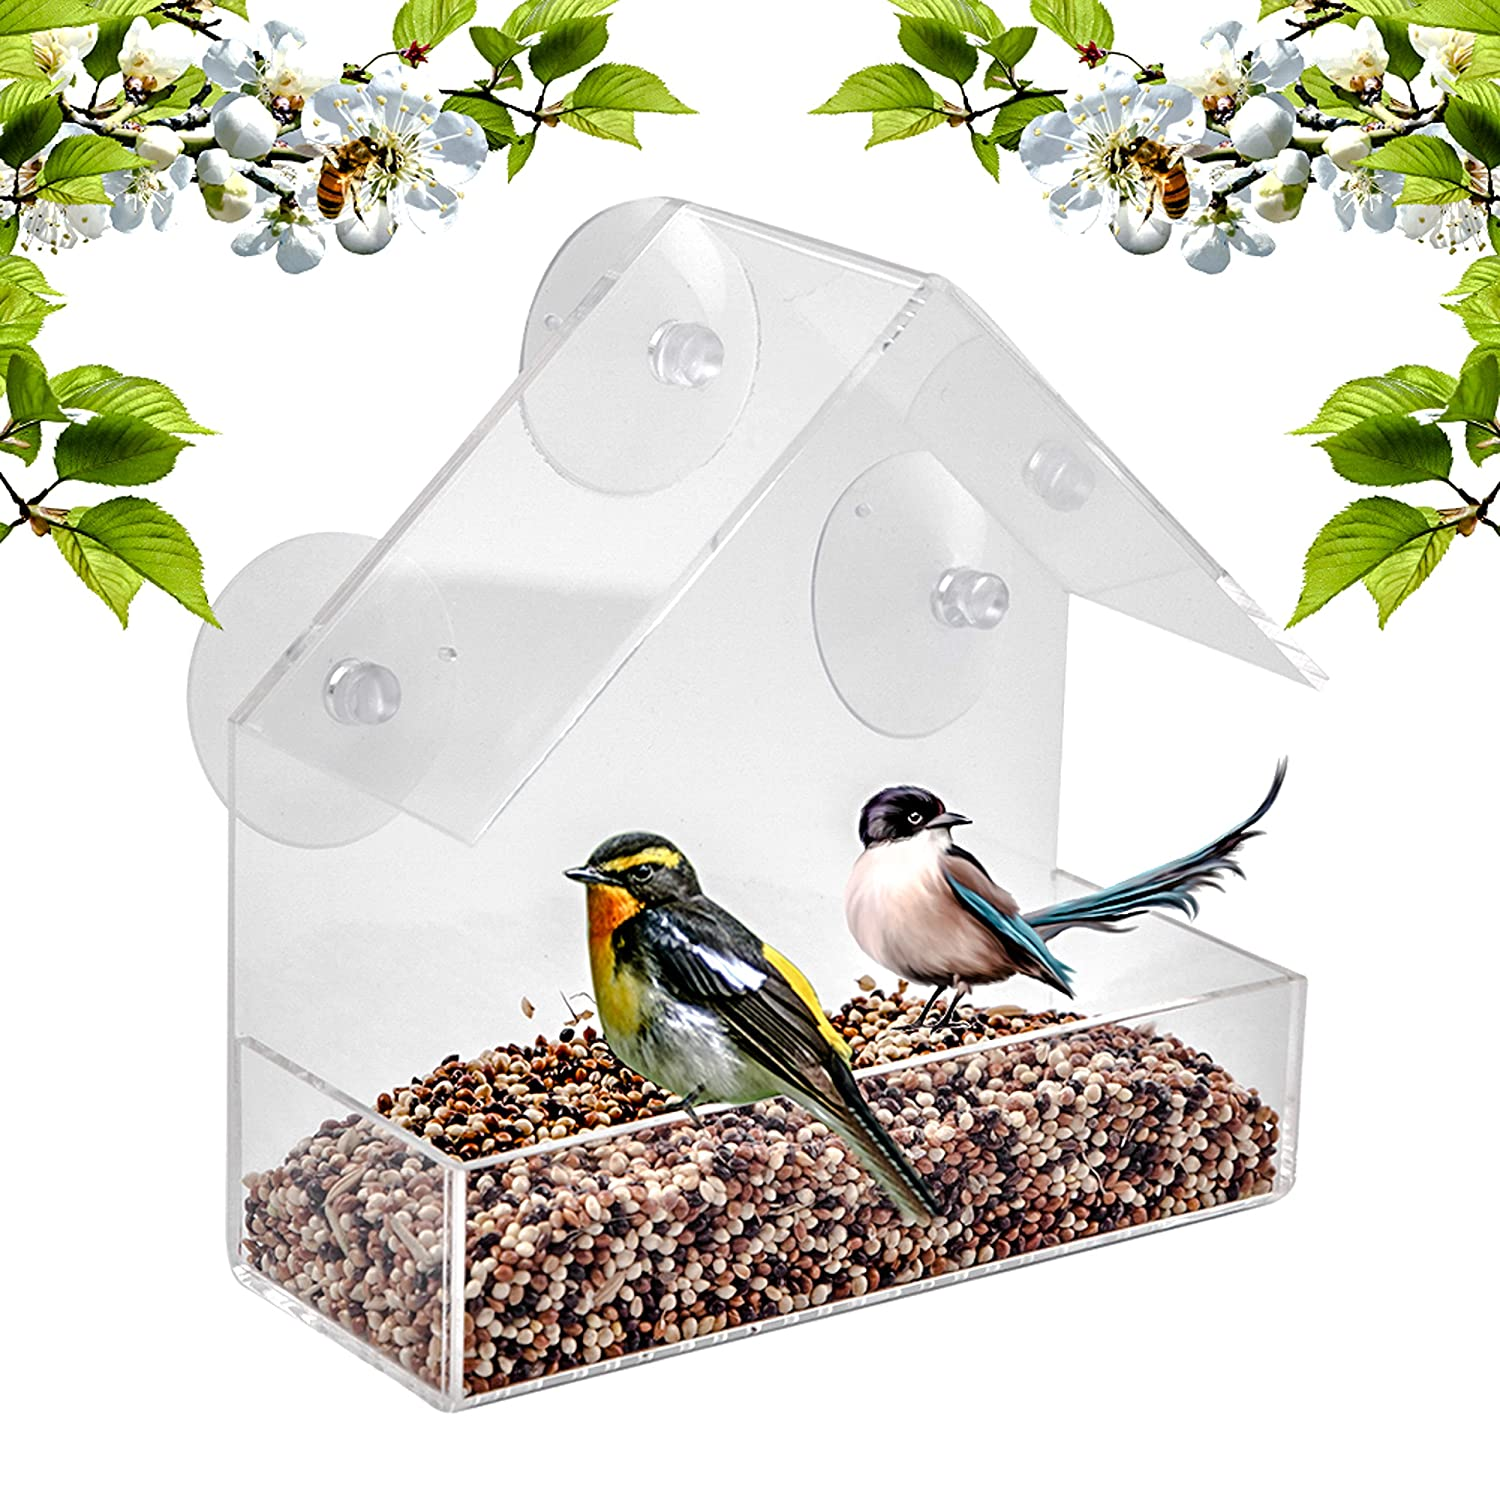 Window Bird Feeder Built to Last A Lifetime Decorate Your House with Beautiful Wild Birds 100% Clear Acrylic Plastic with 3 Strong Extra Suction Cups Included - Great Gift Idea for Nature Lovers BAVISION